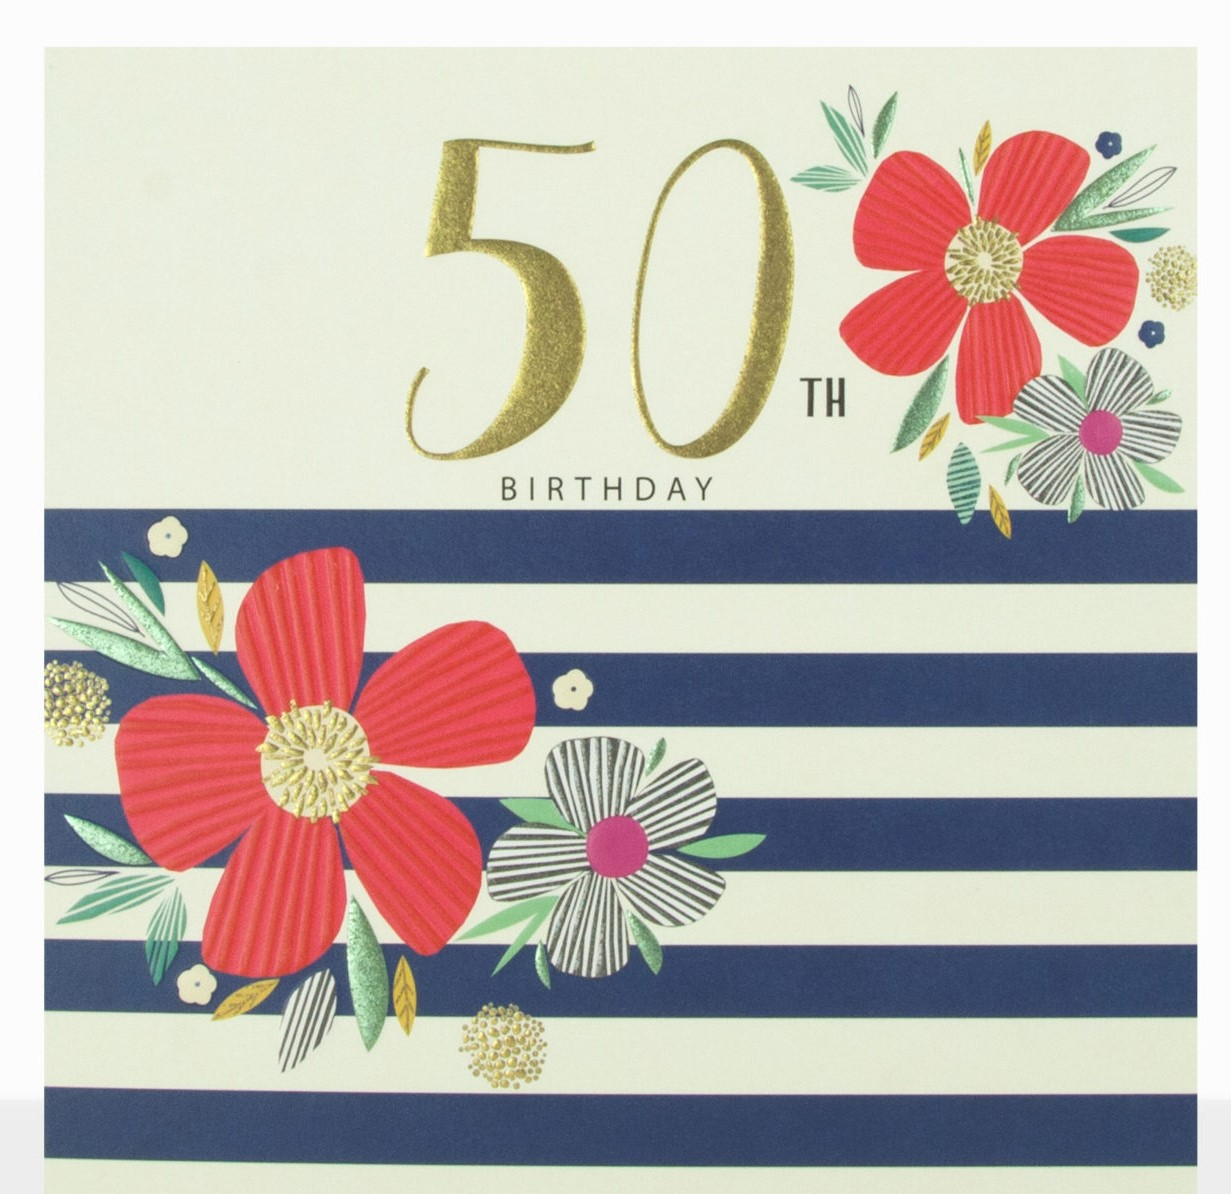 buy 50th birthday card online at karenza paperie luxury hand finished birthday cards for her for fifiteth age fifty age 50 cards flowers stripes